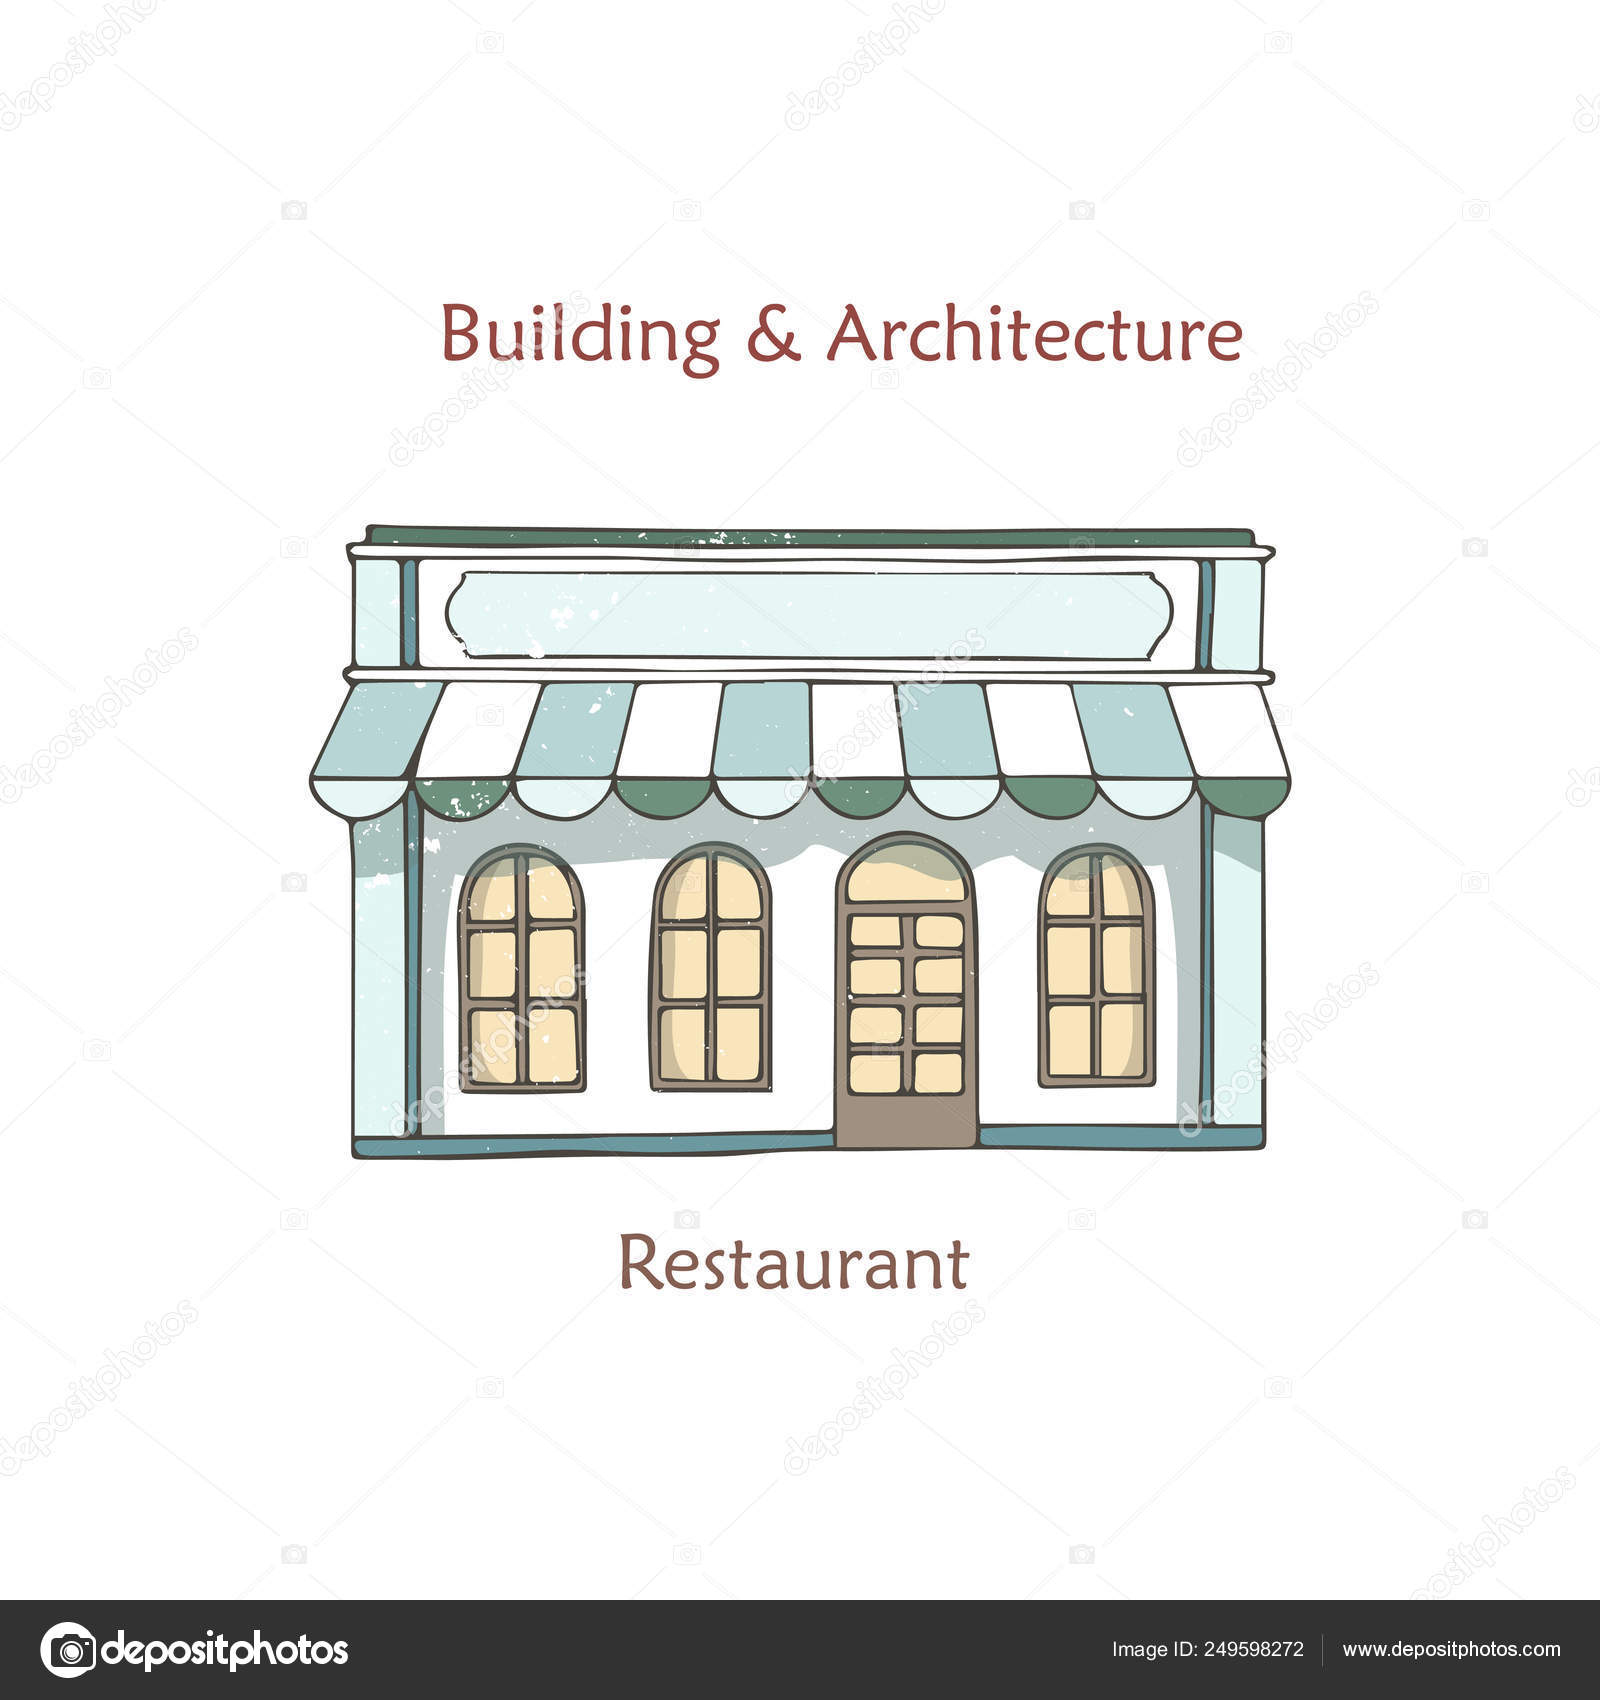 Cafe Shop Storefront Vector Coffee House Vintage Store Front Facade Building With Window Retro Street Exterior Architecture Cartoon Illustration Isolated In Flat Design Hand Drawn Clip Art Stock Vector C Arthouze 249598272